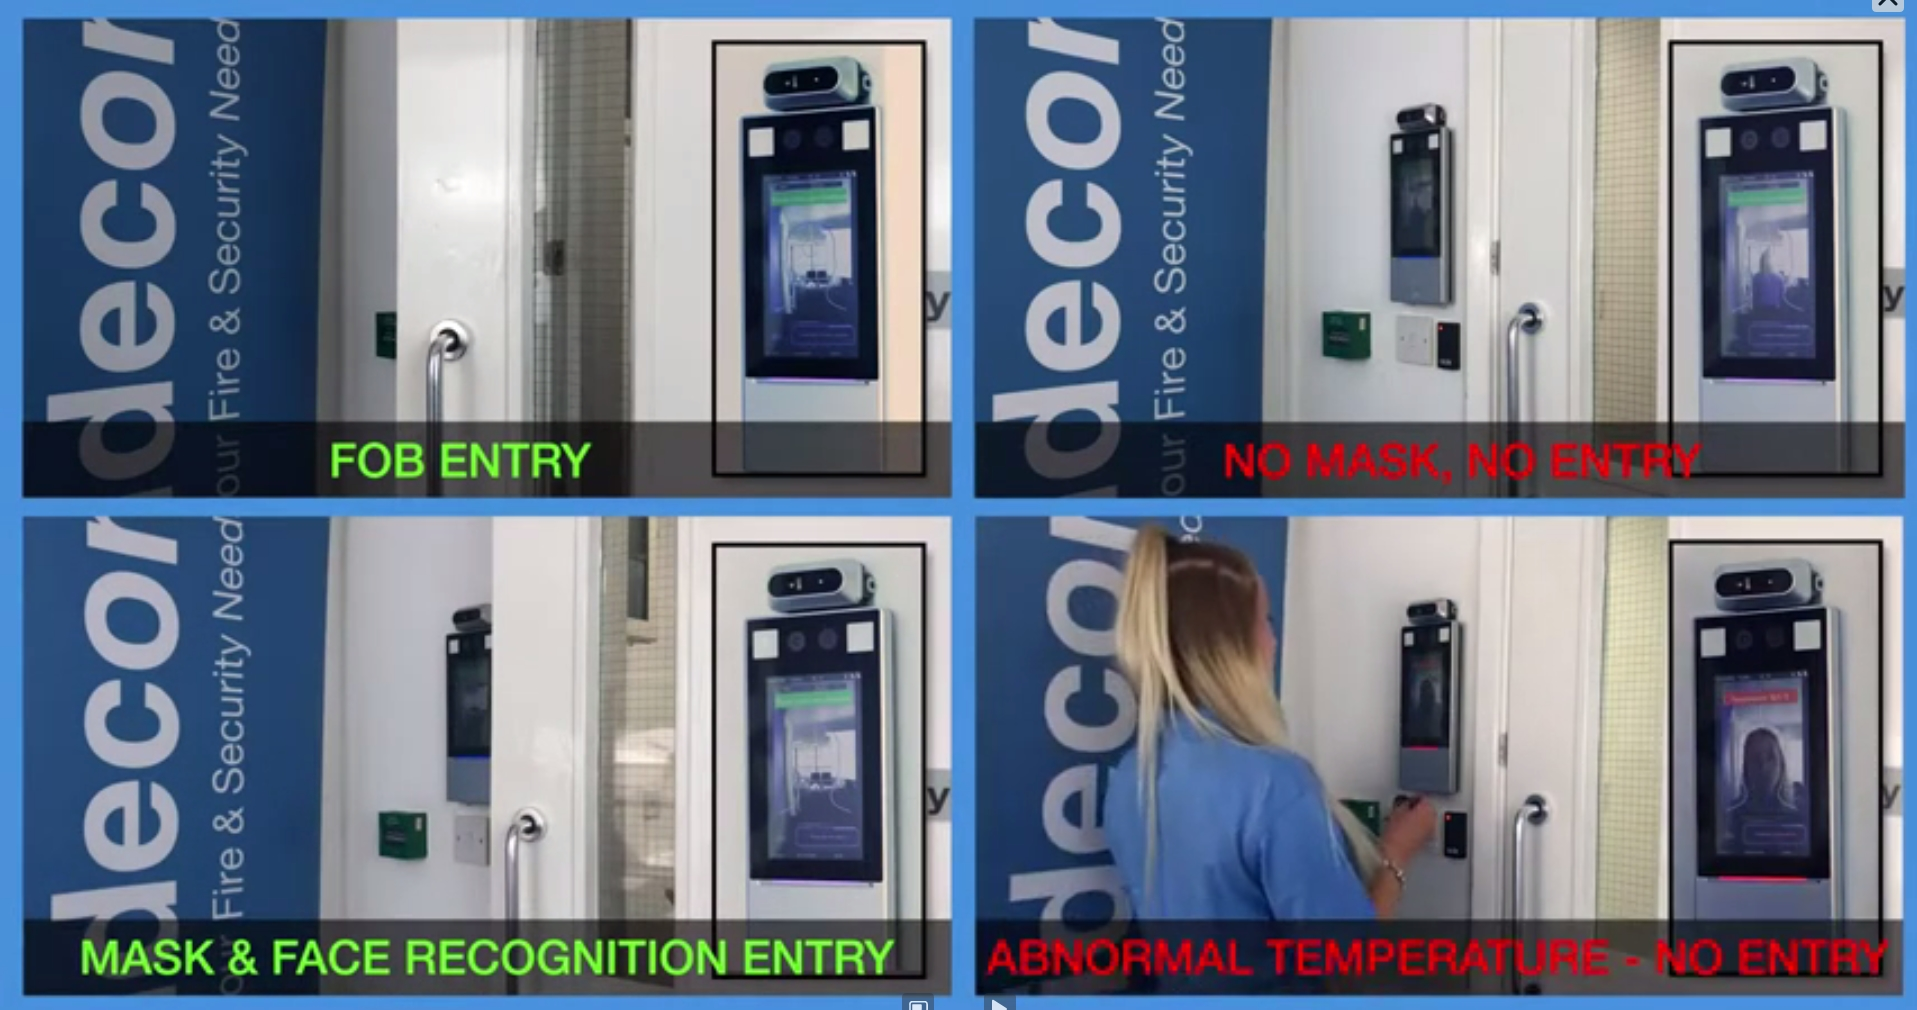 Thermal Analysis Access Control System